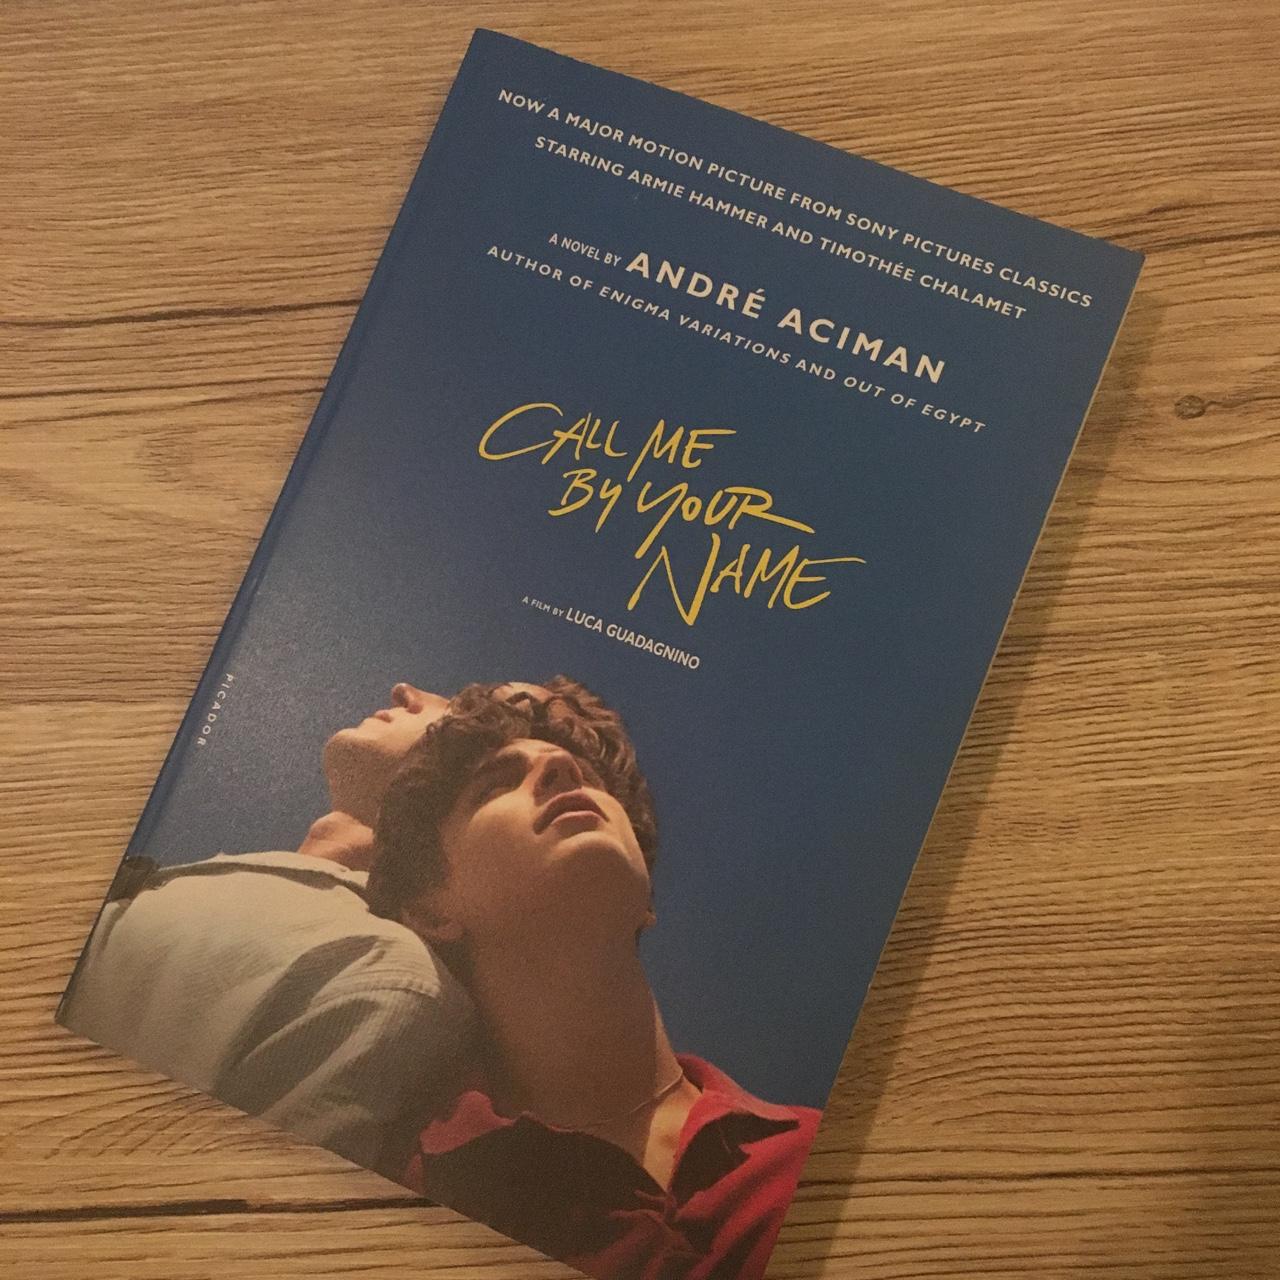 Call me by your name by andre aciman  Perfect    - Depop